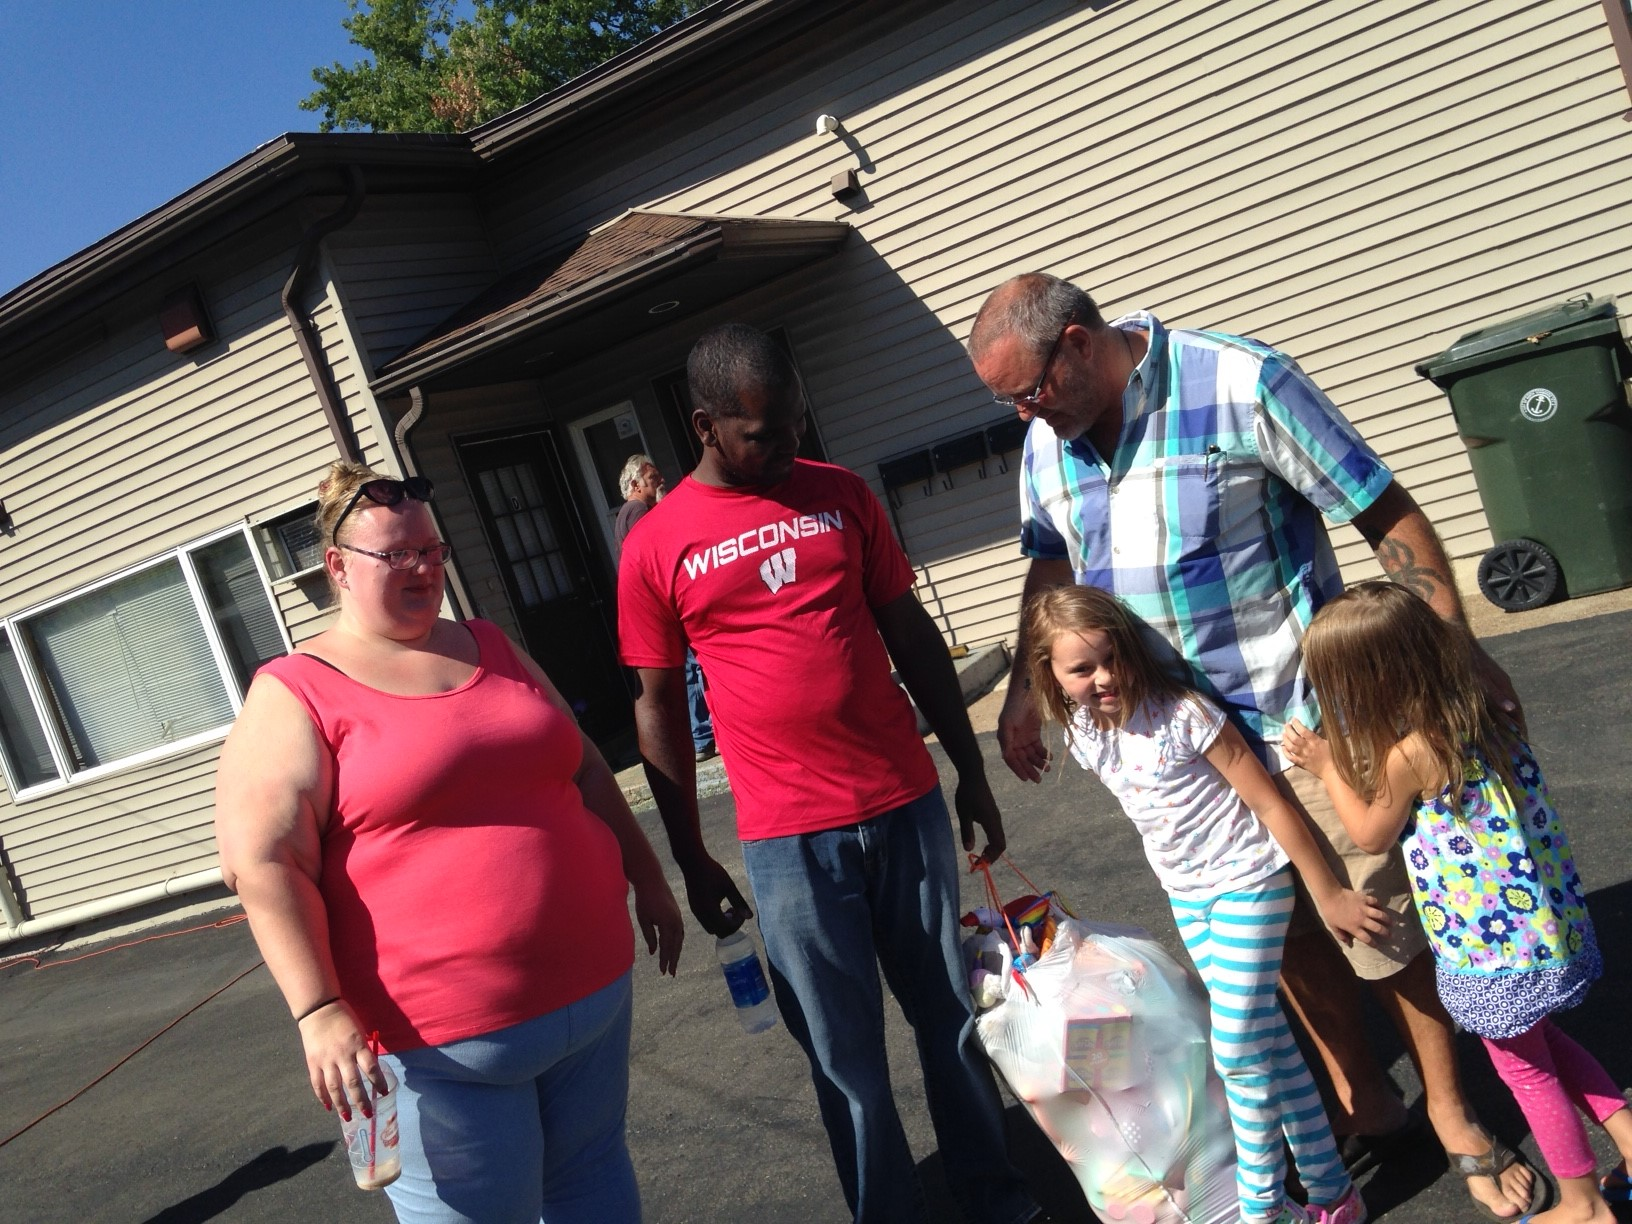 Amanda and Kenneth Walker, left, accept a bag full of toys for their daughters from John Karcz and his daughters, Anastasia and Isabella, right. The Walkers lost most of their possessions in a fire at their apartment Wednesday, two days after Kenneth Walker received a threatening, racist letter demanding he resign from Gratwick Hose Volunteer Fire Company. (Lou Michel/Buffalo News)